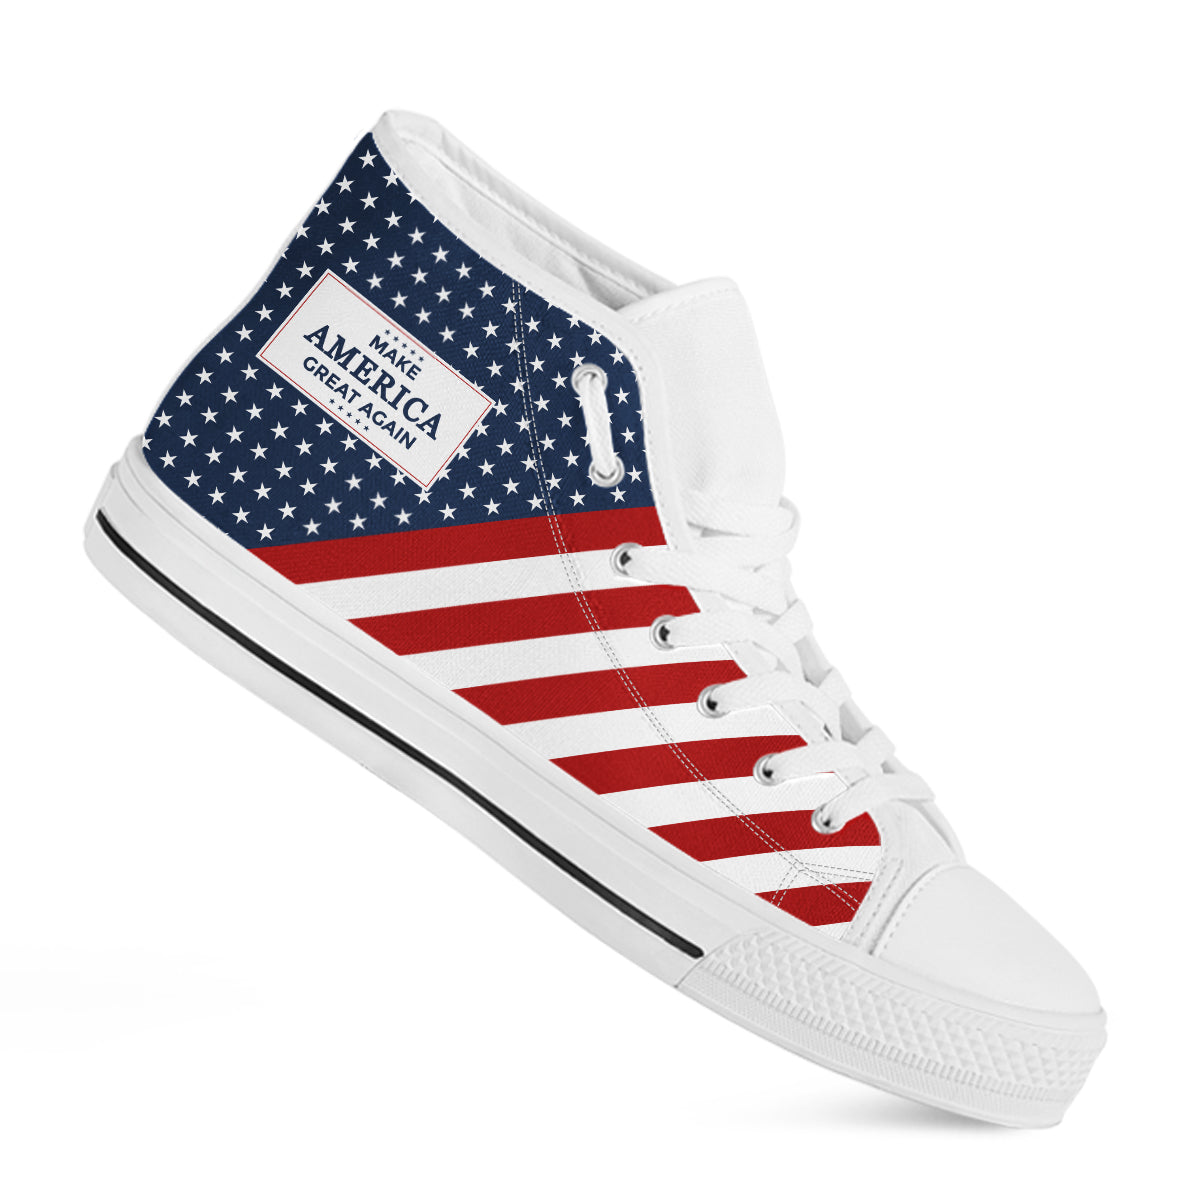 MAGA - Women's High Top Shoes